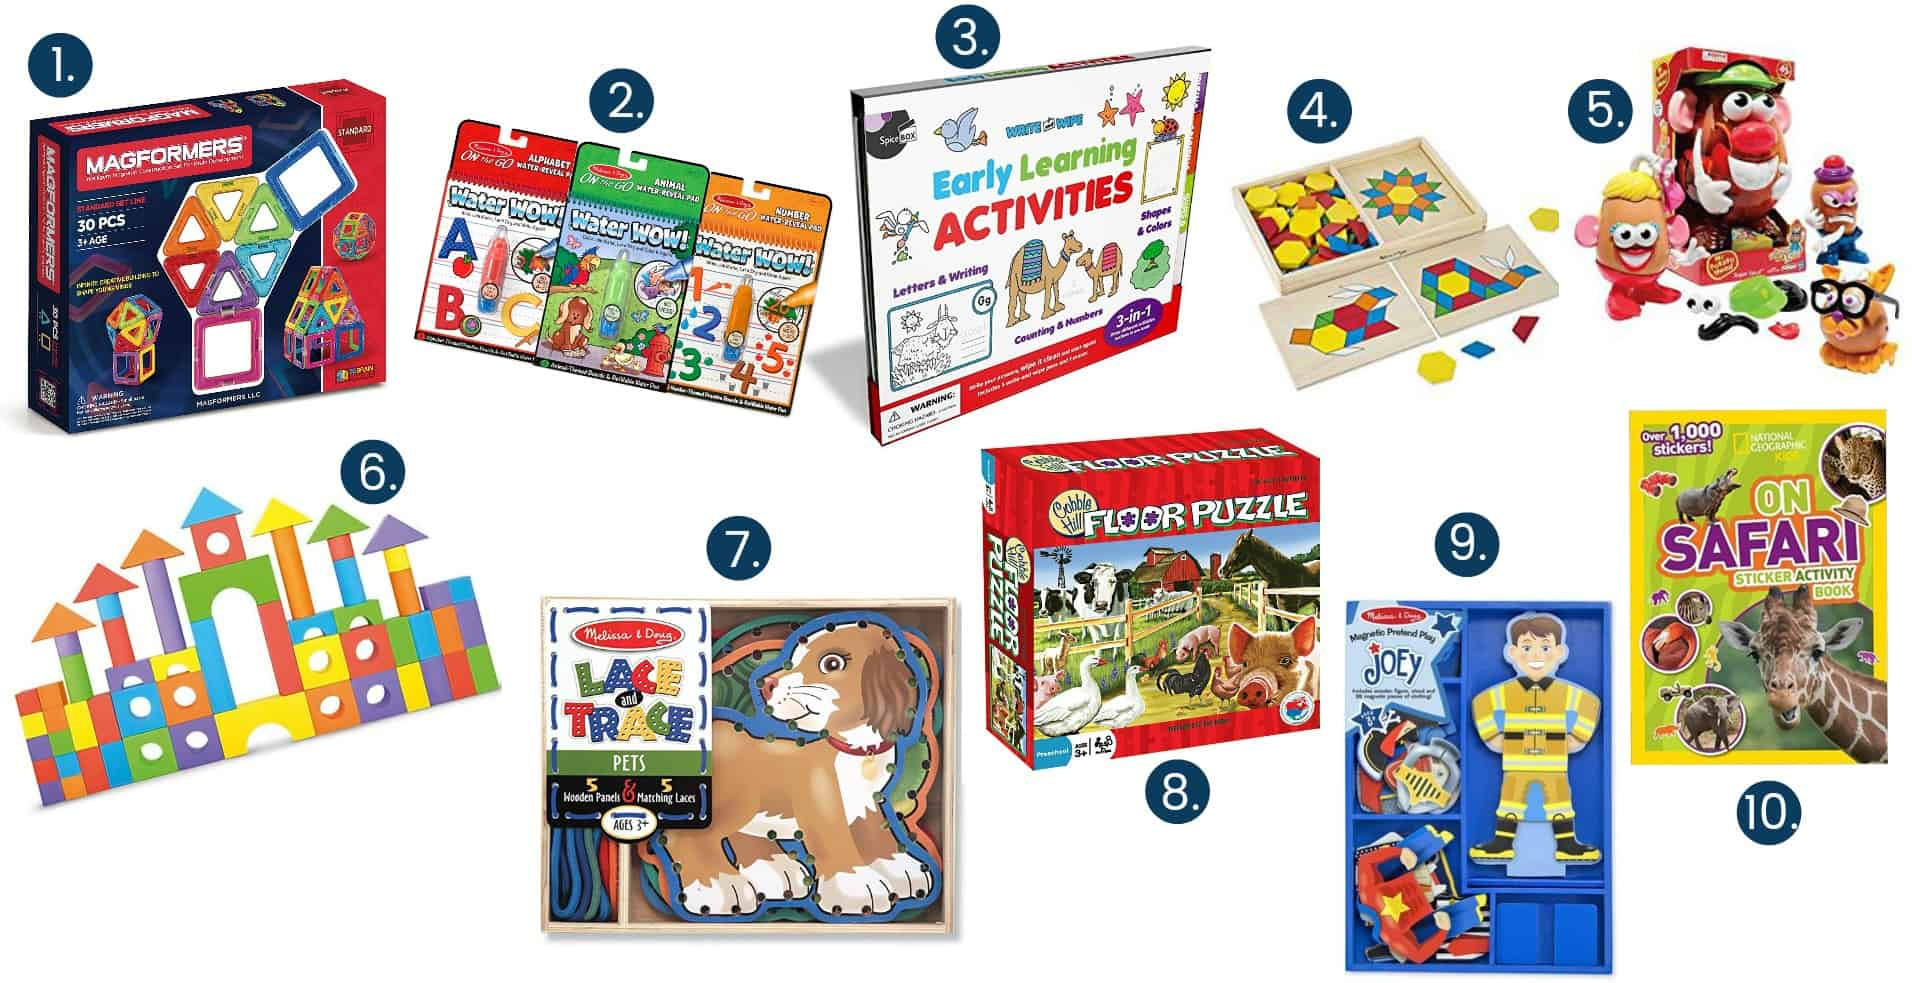 10 games and activities for preschoolers